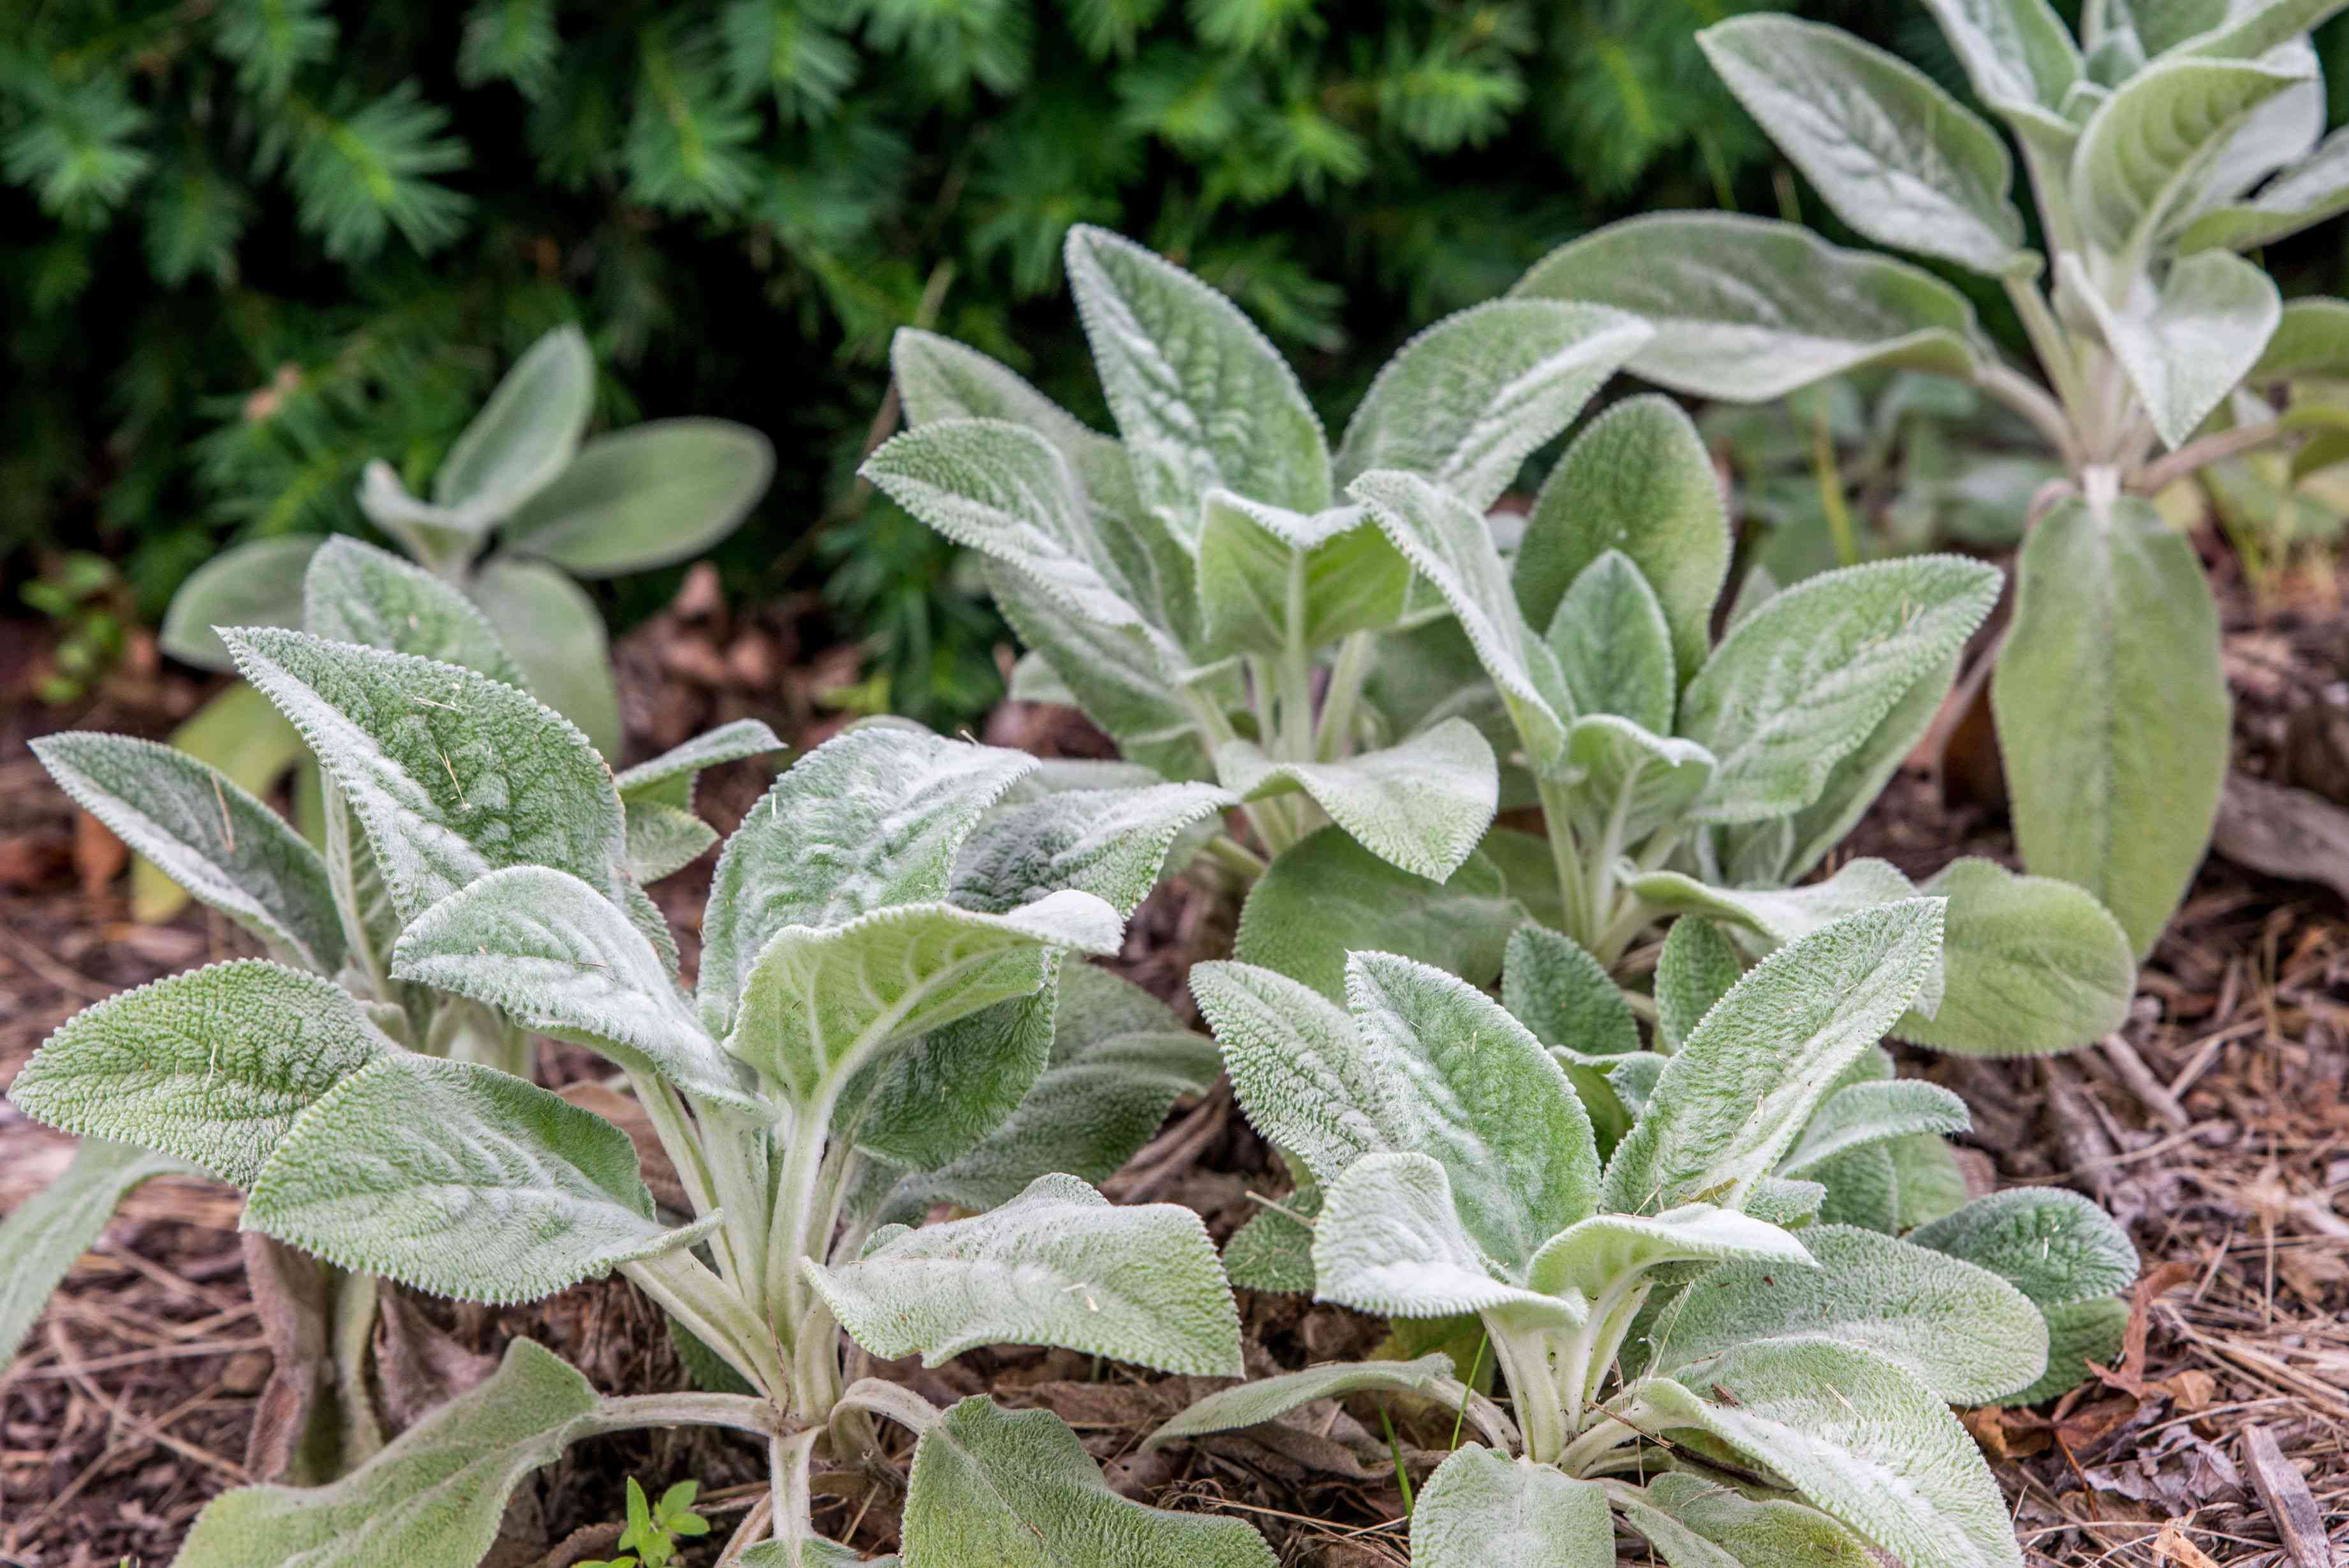 Lamb's ear plant with thick, silvery-green and fuzzy leaves surrounded by mulch closeup